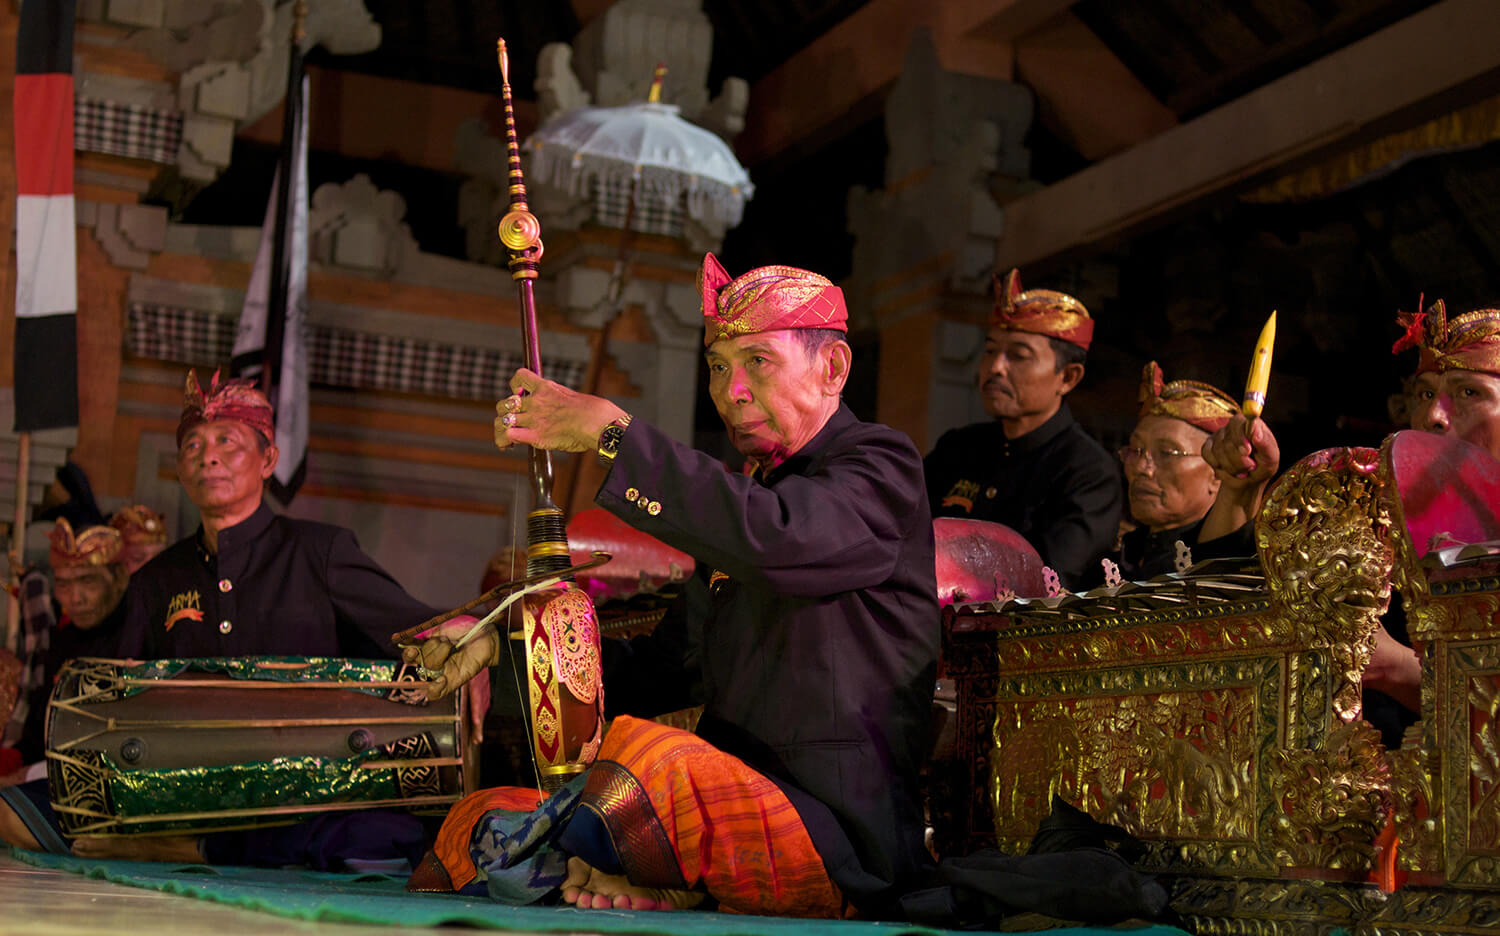 Madra in 2015 playing  rebab  with Peliatan's renowned Tirta Sari gamelan